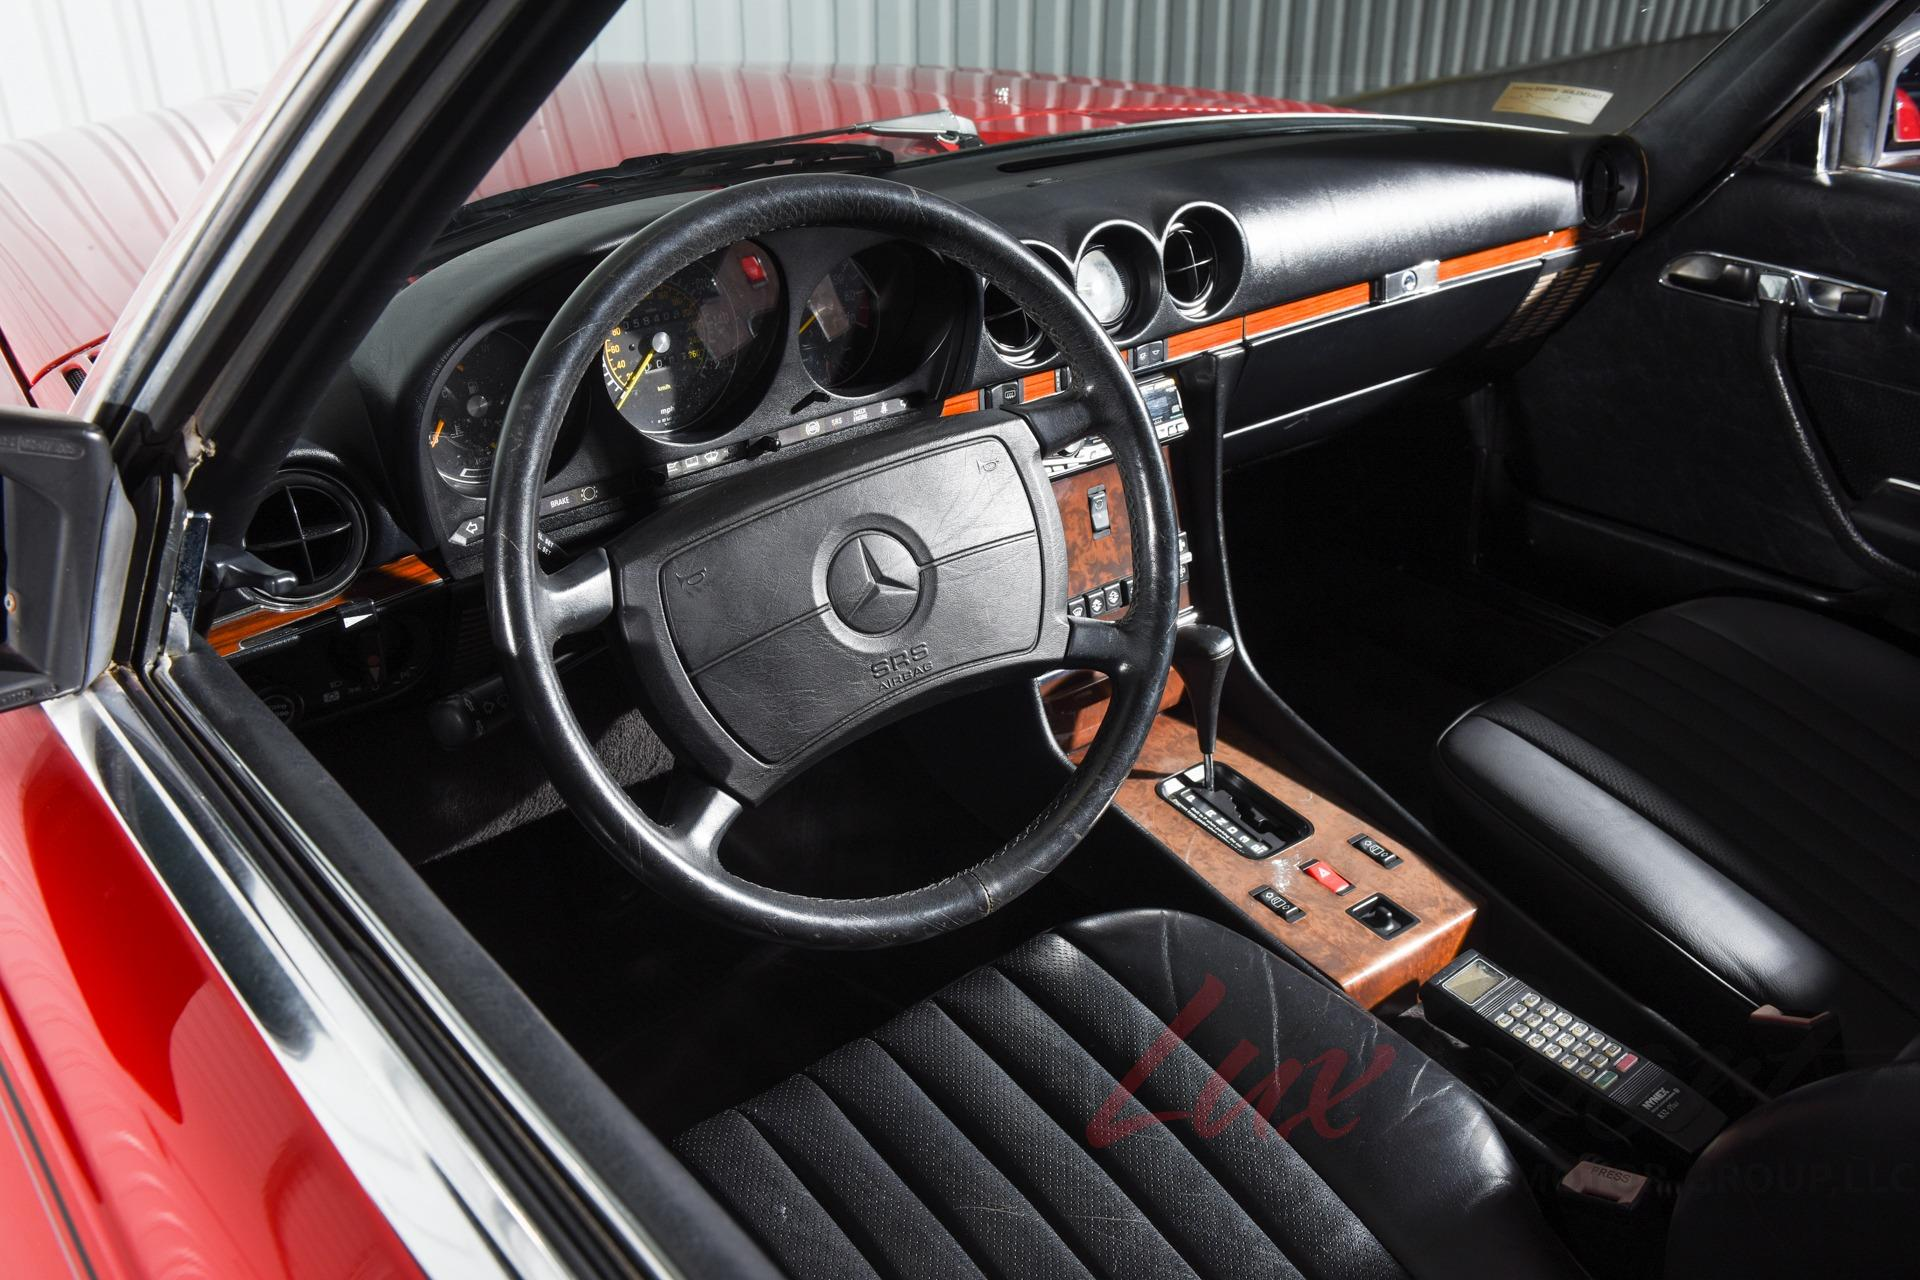 Used 1989 Mercedes-Benz 560SL Roadster 560 SL   New Hyde Park, NY